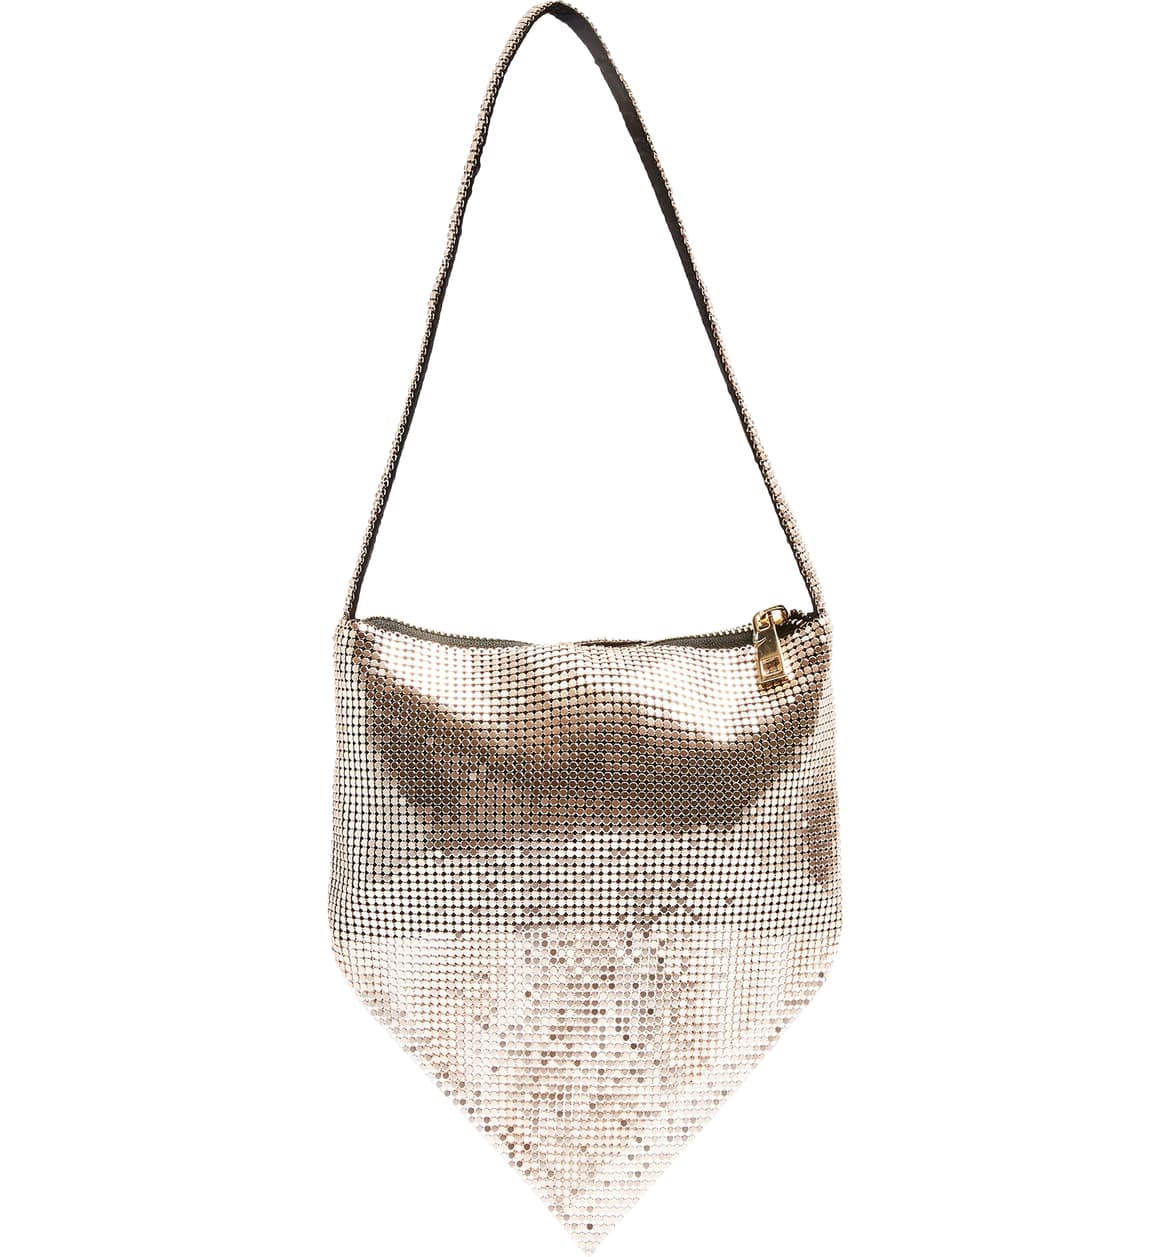 "<a  href=""https://shop.nordstrom.com/s/topshop-millie-mesh-shoulder-bag/5474626/full?origin=keywordsearch-personalizedsort&breadcrumb=Home%2FAll%20Results&color=gold"" target=""_blank"" title=""https://shop.nordstrom.com/s/topshop-millie-mesh-shoulder-bag/5474626/full?origin=keywordsearch-personalizedsort&breadcrumb=Home%2FAll%20Results&color=gold"">Millie Mesh Shoulder Bag - $48.</a>{&nbsp;}From cozy to gold hued to tailored, Nordstrom has the hottest trends for getting glam this holiday season! (Credit: Nordstrom)"